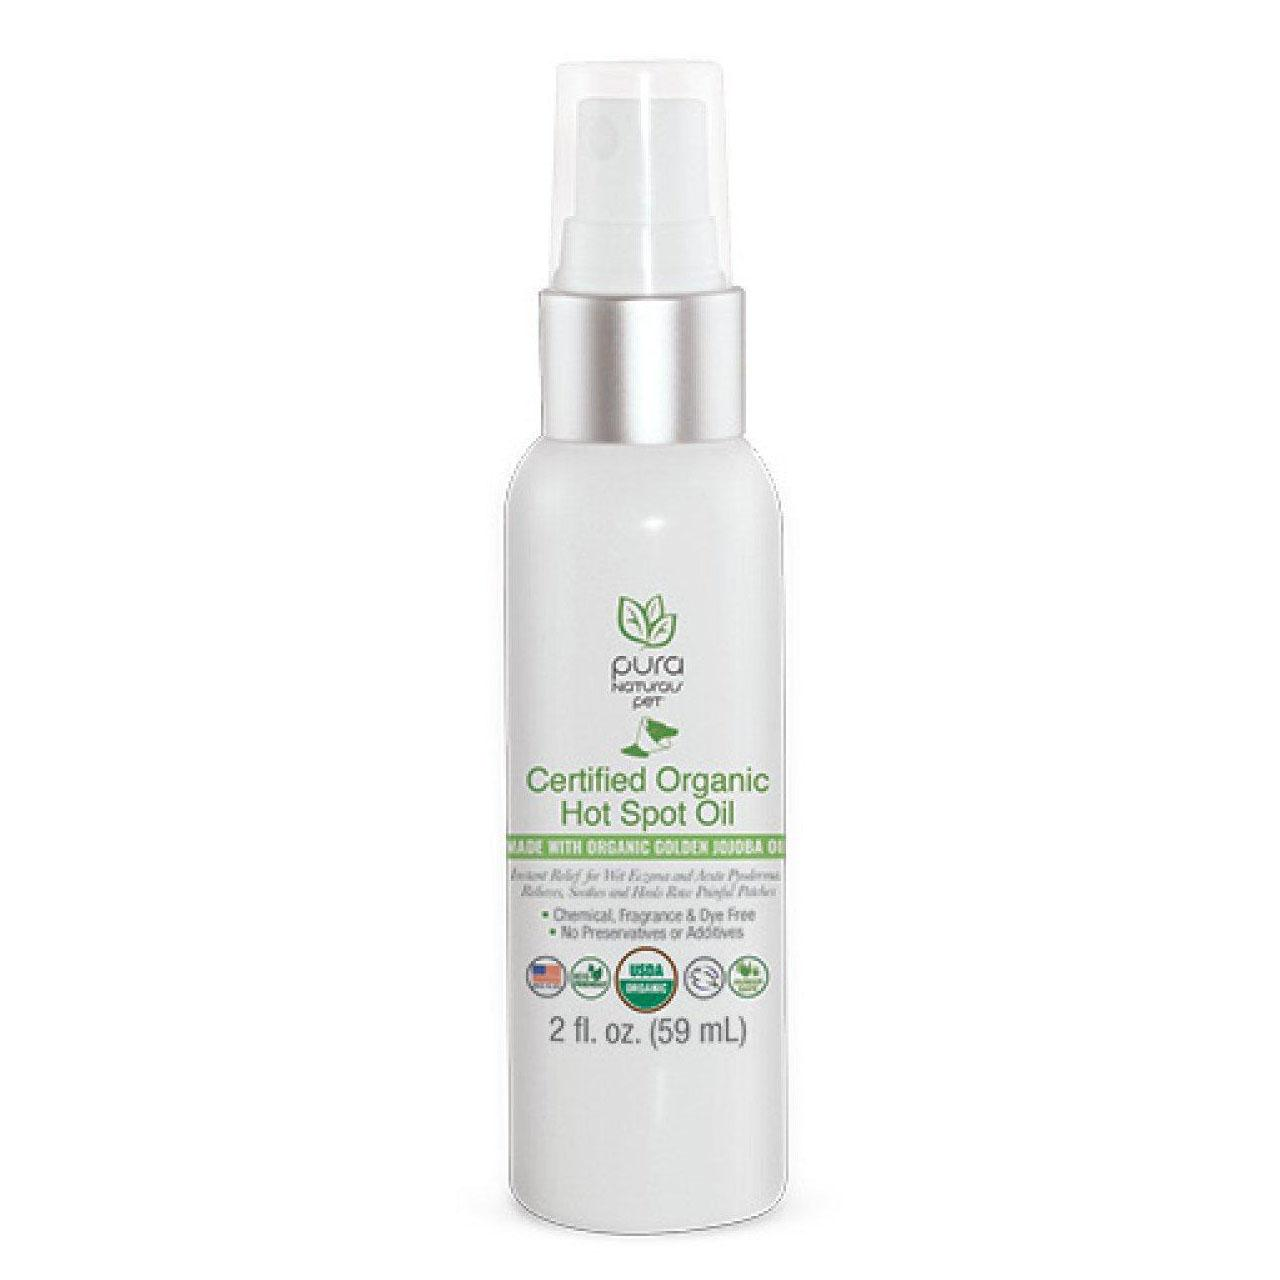 Pure and Natural Pet Certified Organic Hot Spot Oil for Dogs